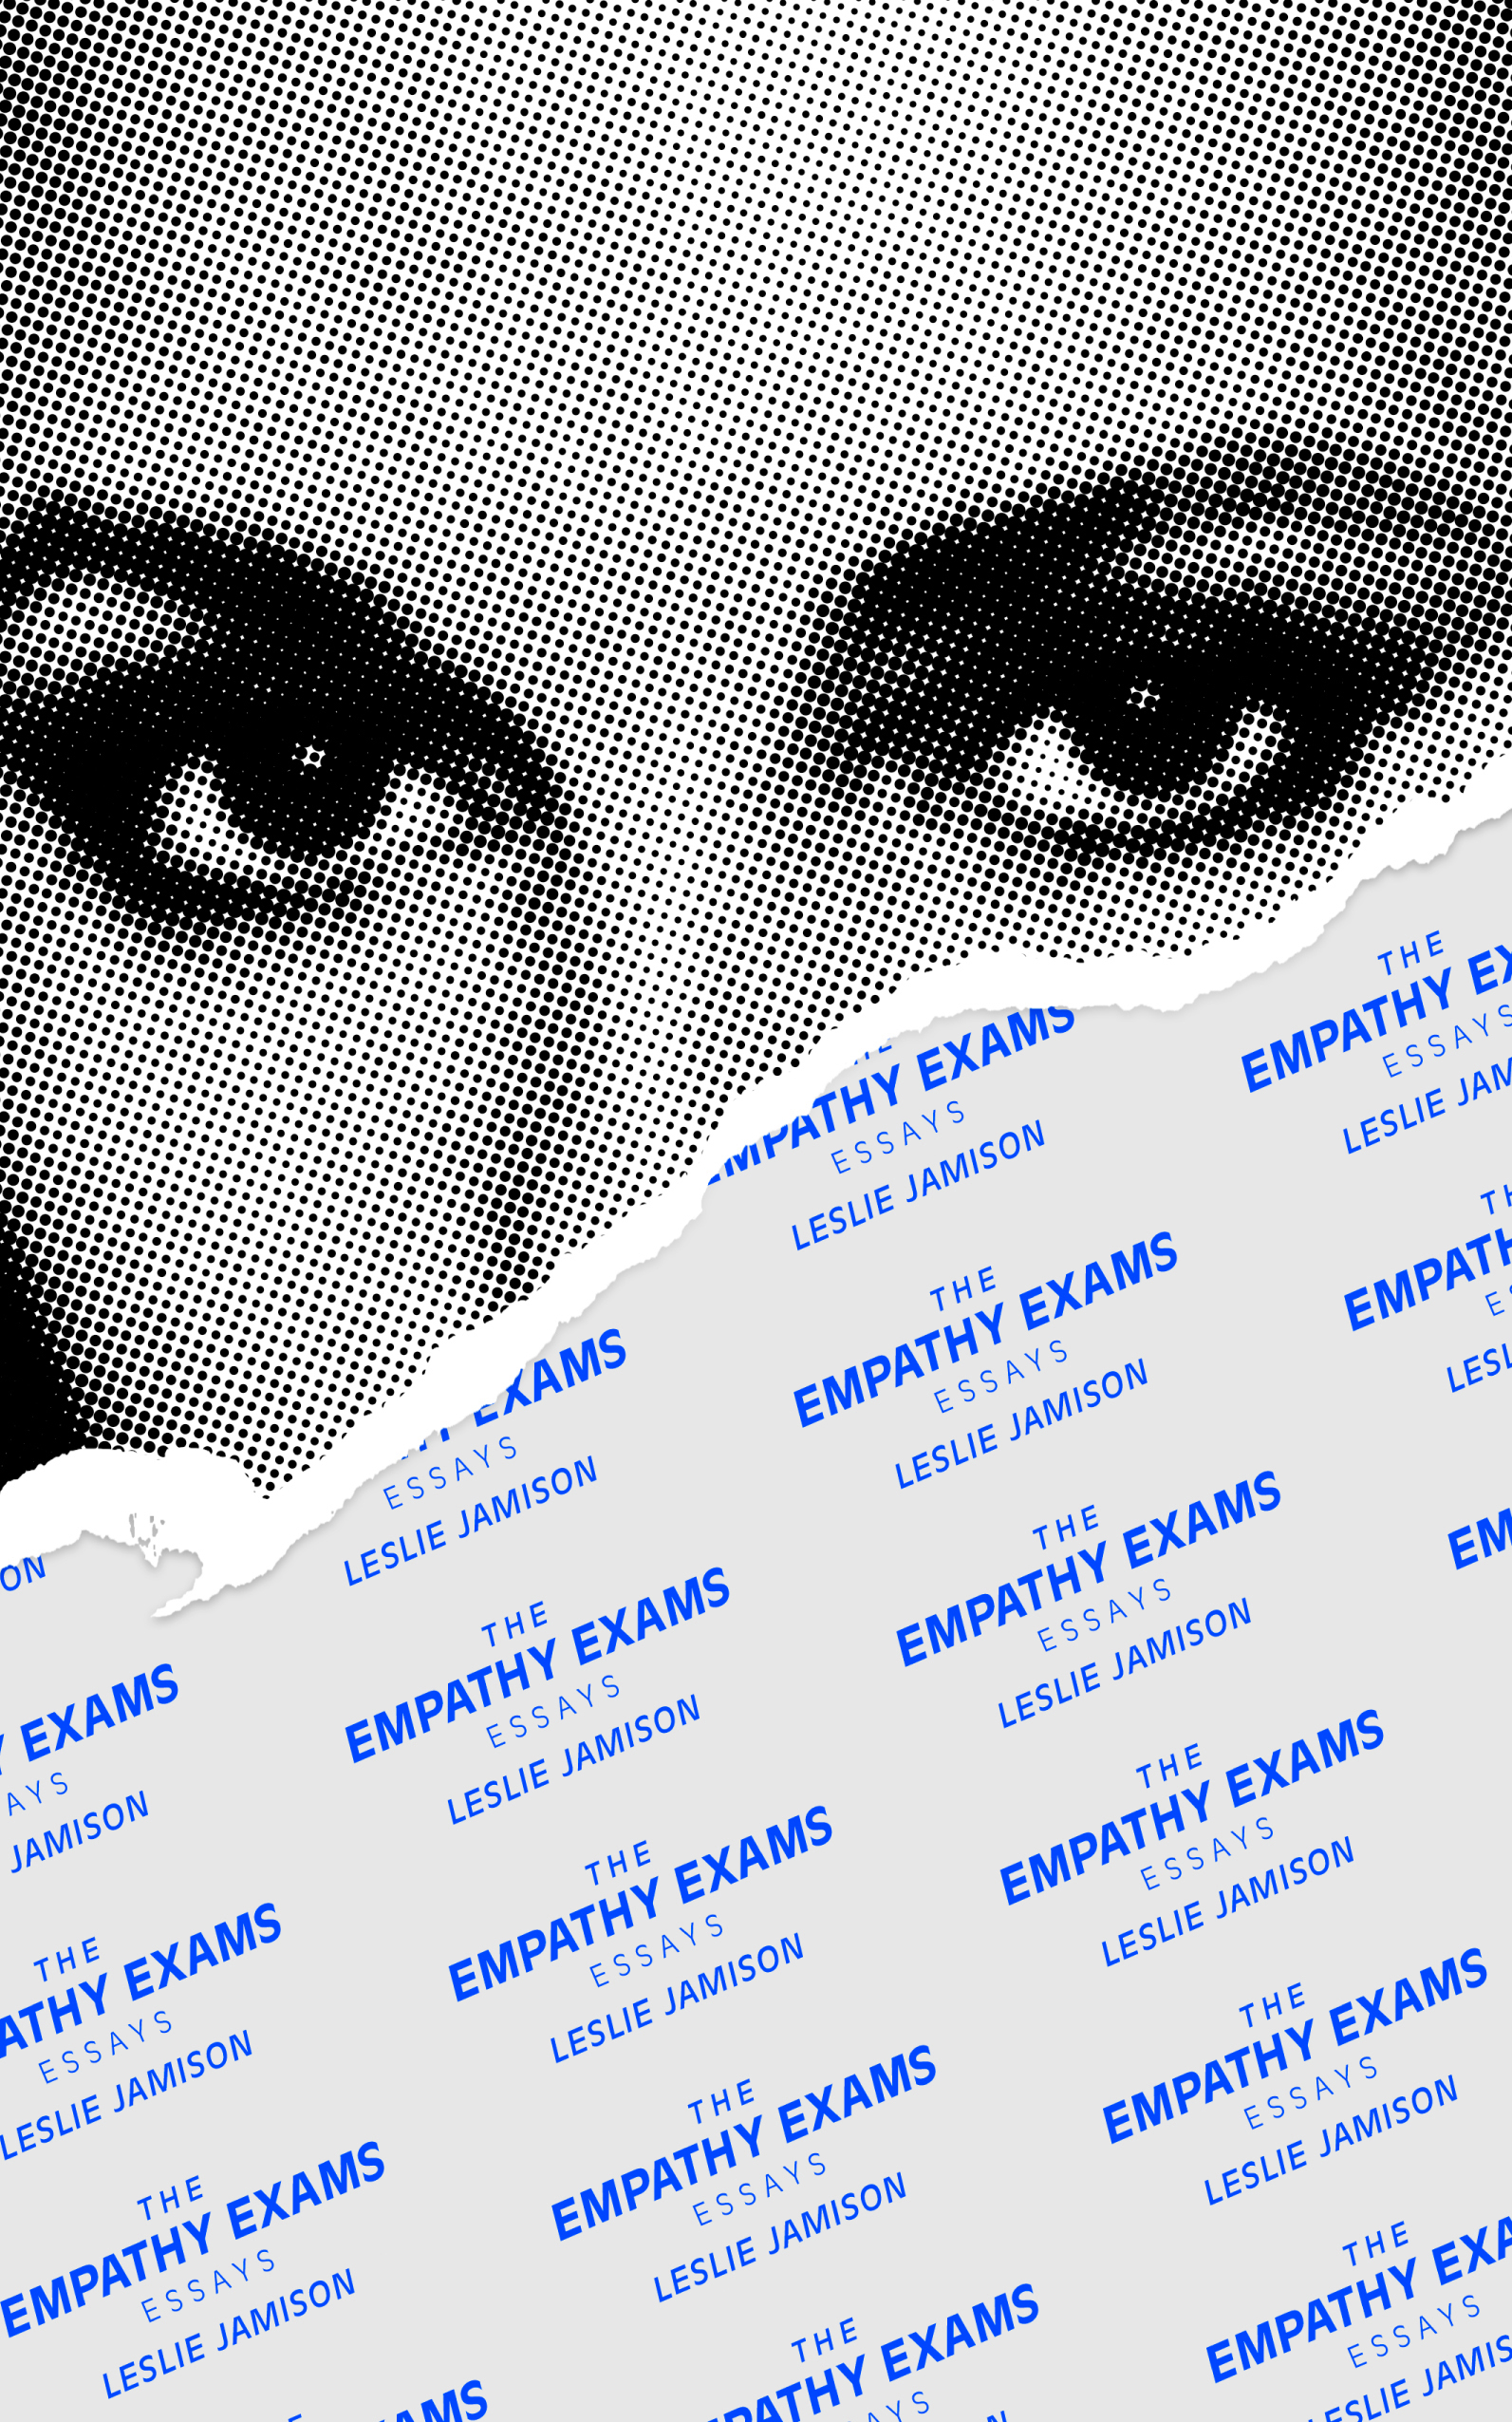 the empathy exams essays leslie jamison Download and read the empathy exams essays leslie jamison the empathy exams essays leslie jamison change your habit to hang or waste the time to only chat with your.